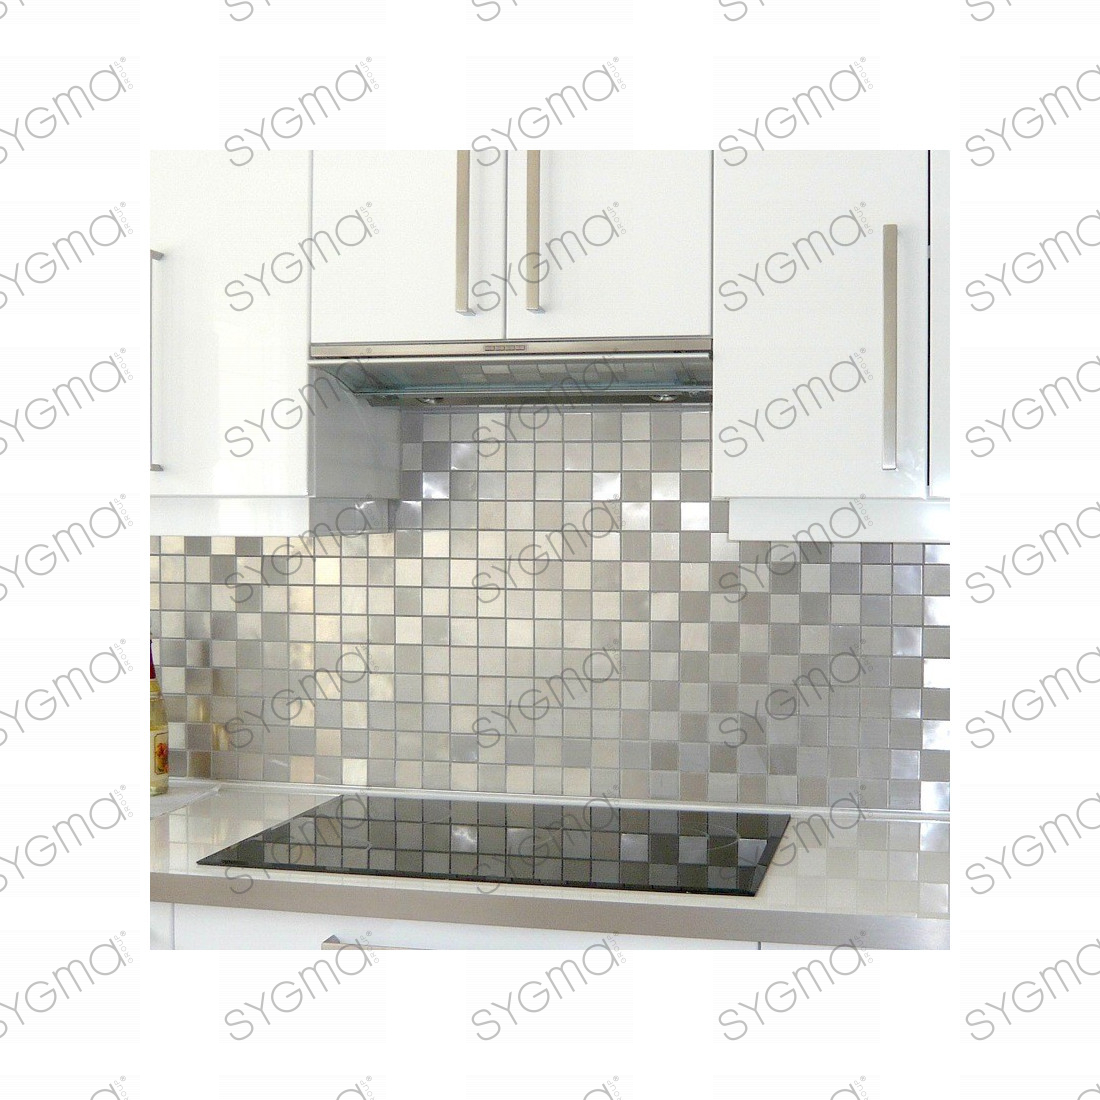 Mosaique et carrelage inox faience credence damier 48 for Protection mur cuisine inox